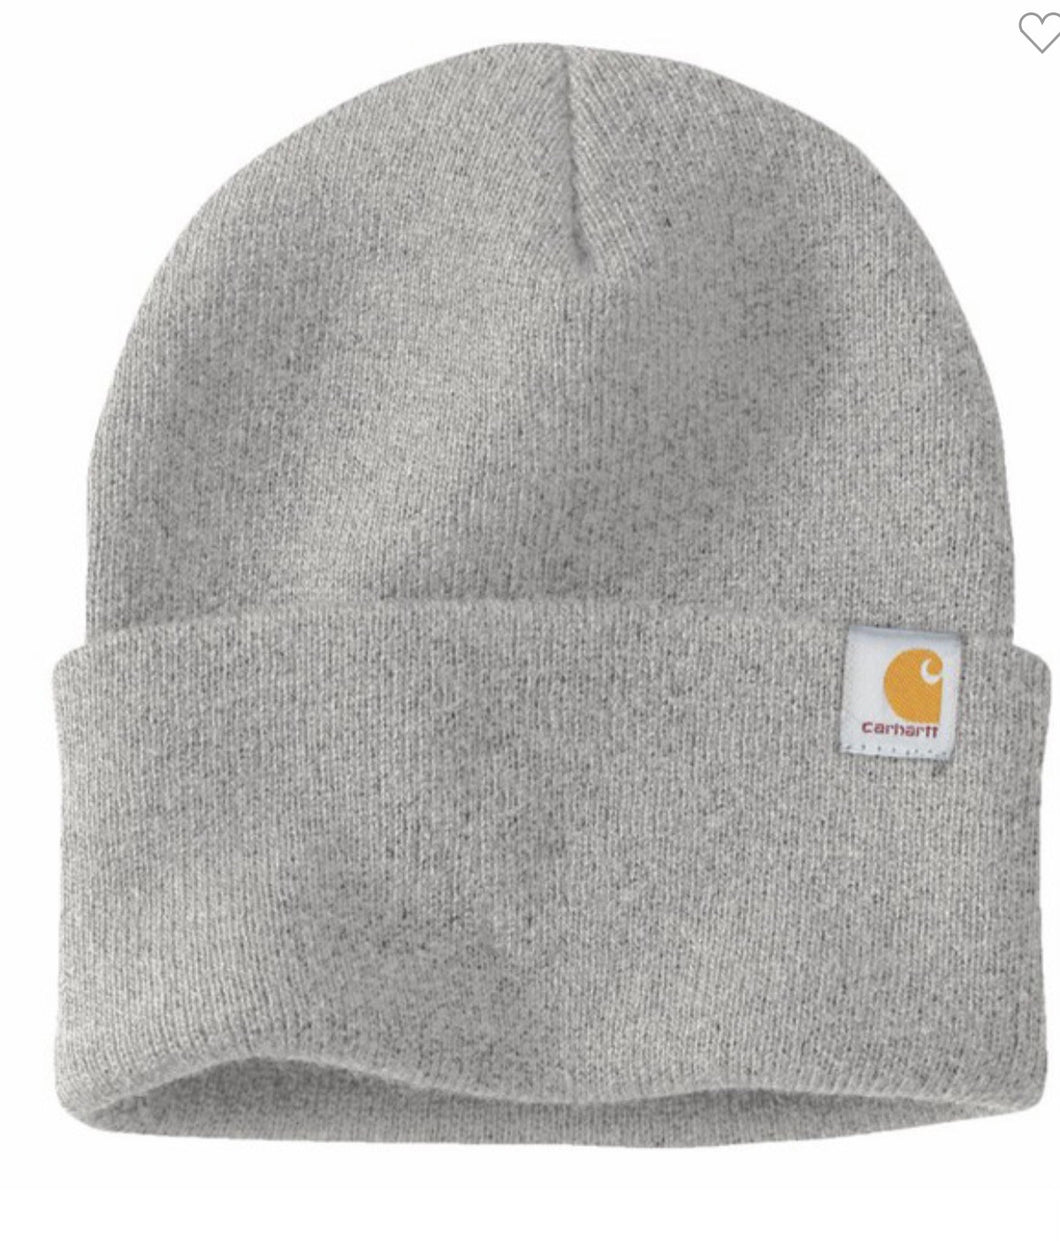 Carhartt Gray Stocking Cap